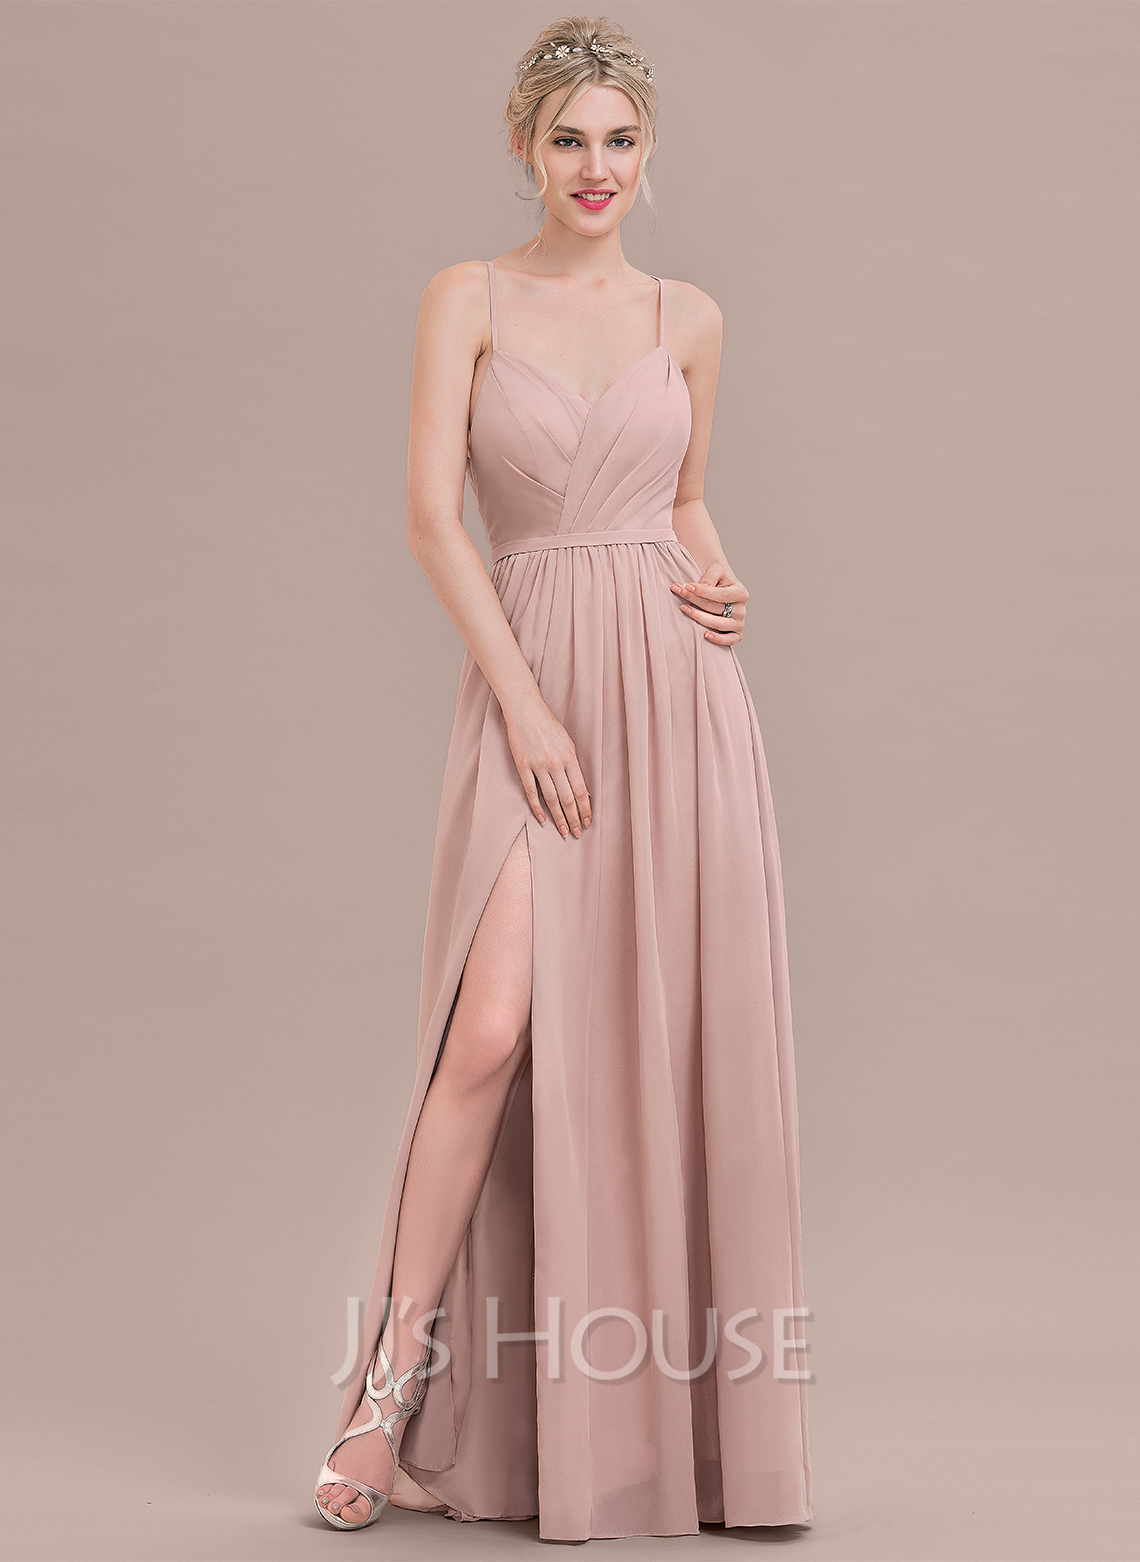 5ed701661a33c A-Line/Princess Sweetheart Floor-Length Chiffon Bridesmaid Dress With  Ruffle Split Front. Loading zoom